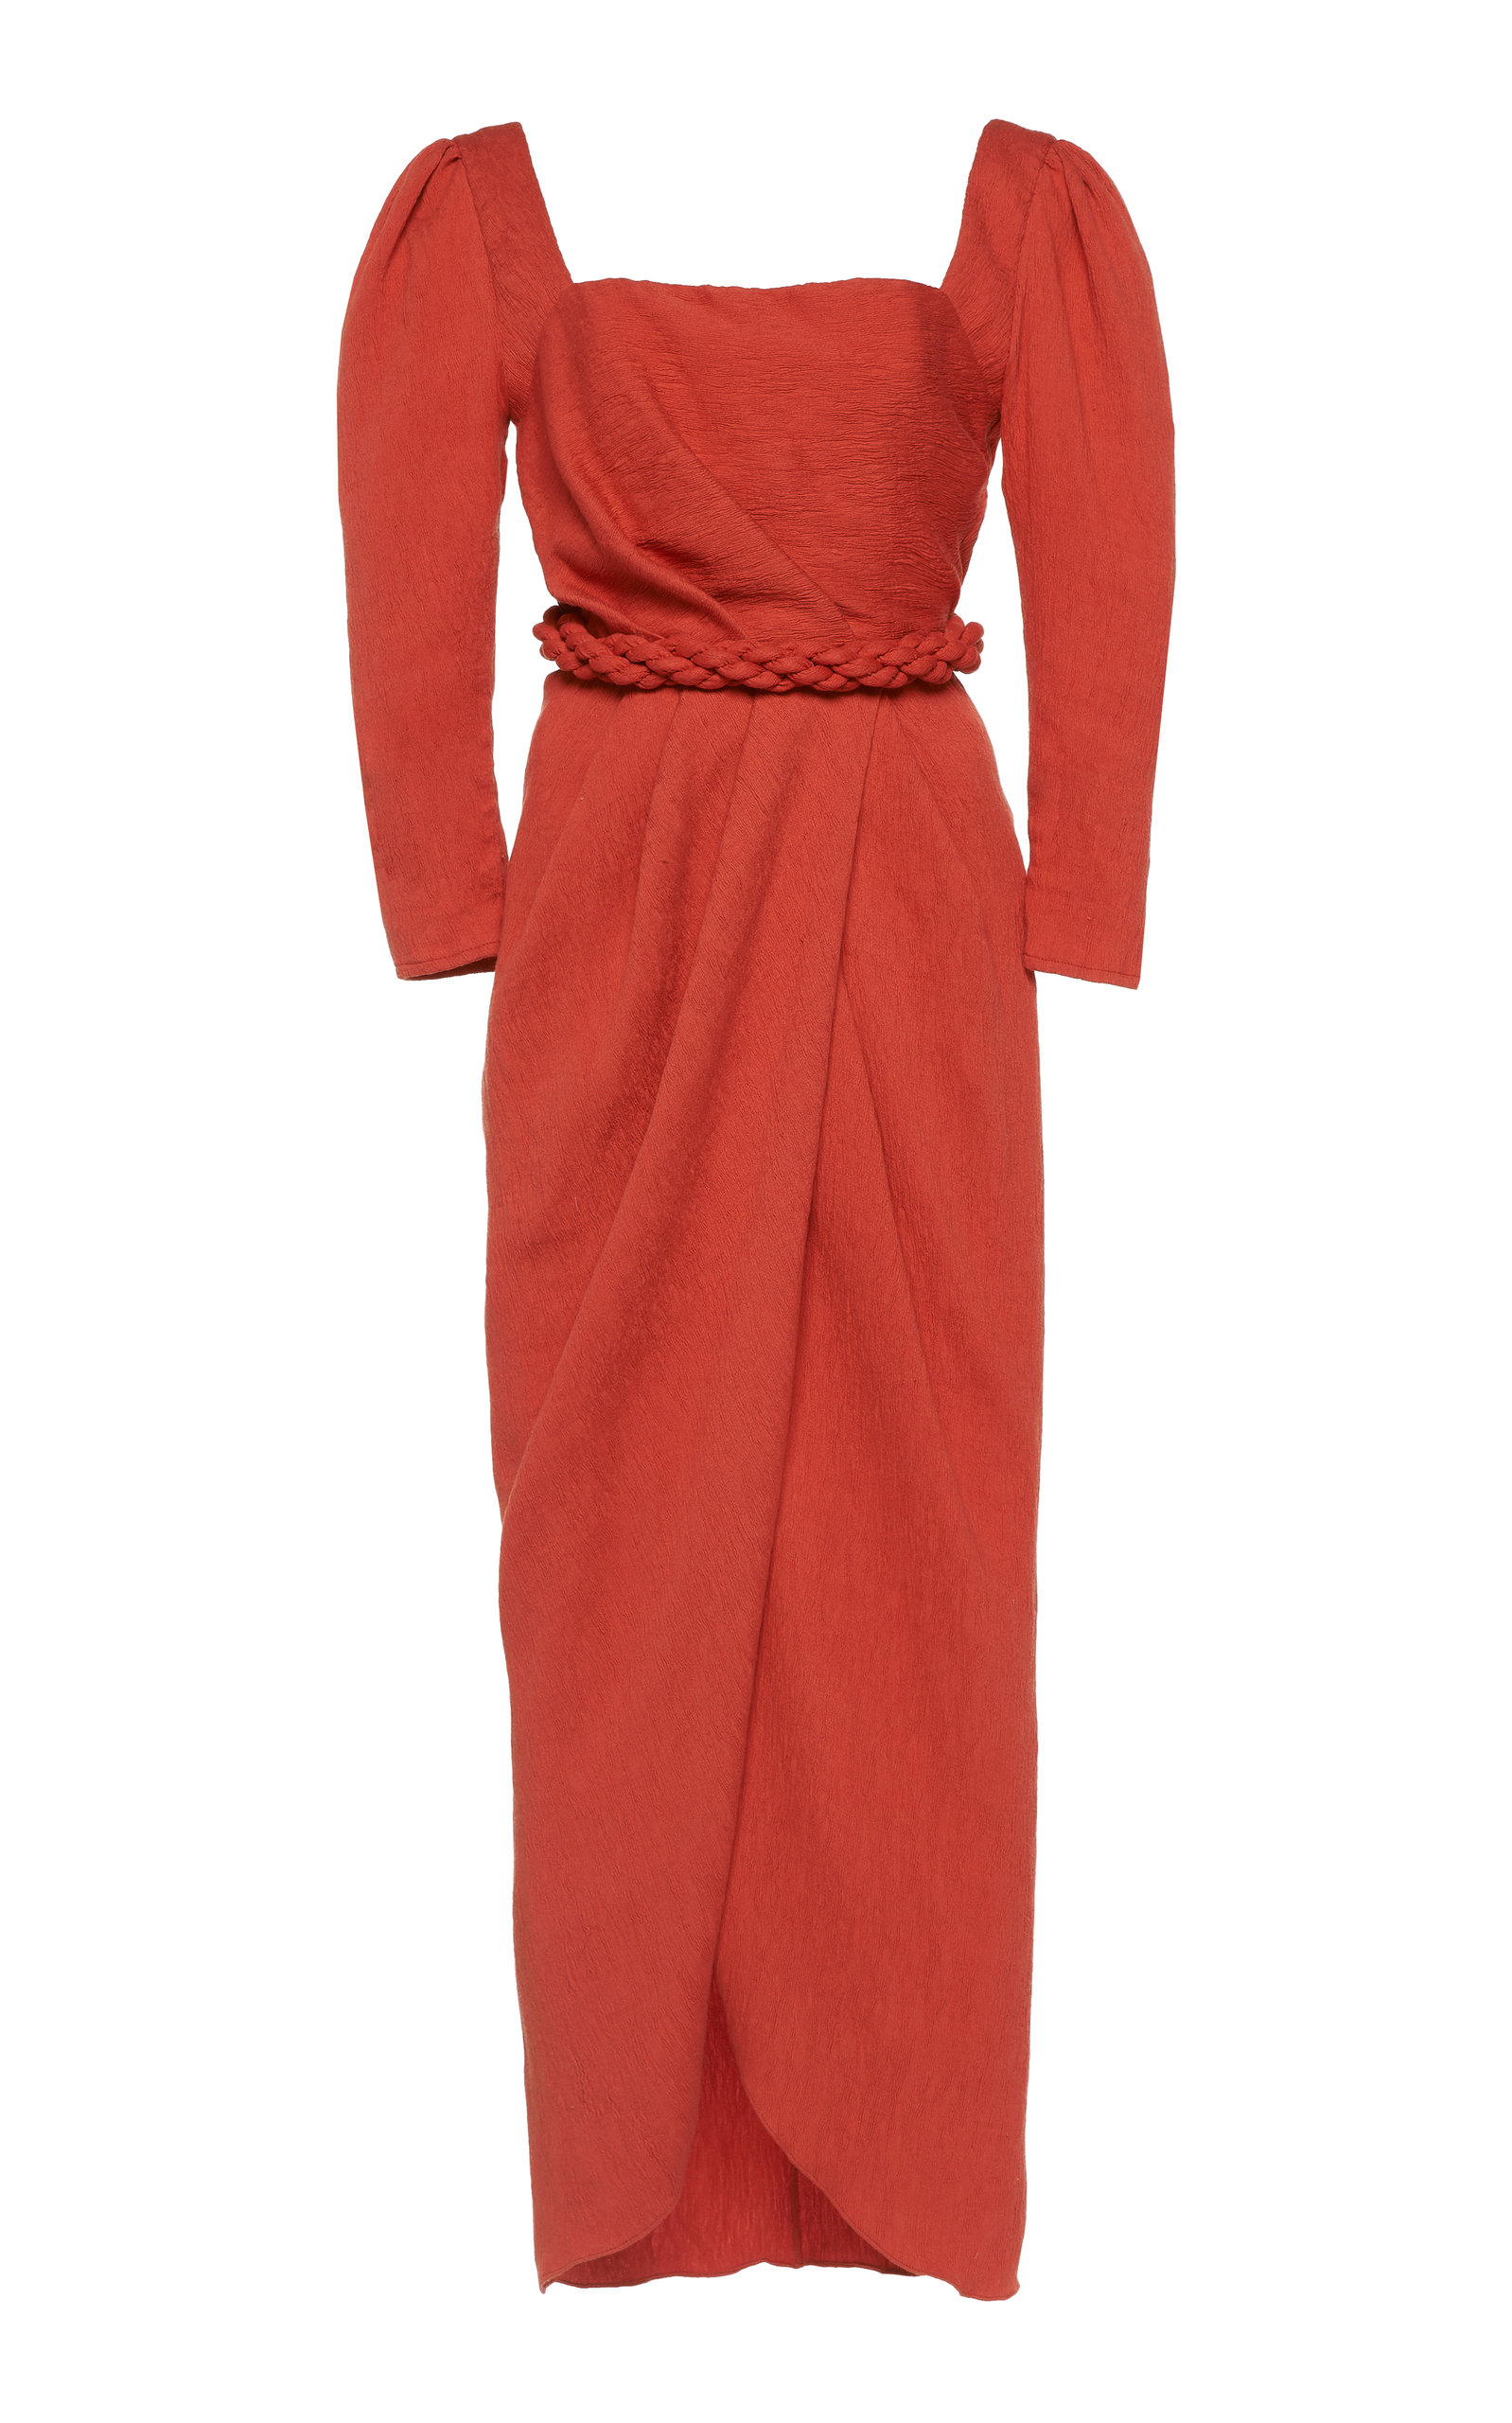 Classic Meetings Draped Crepe Midi Dress by Johanna Ortiz